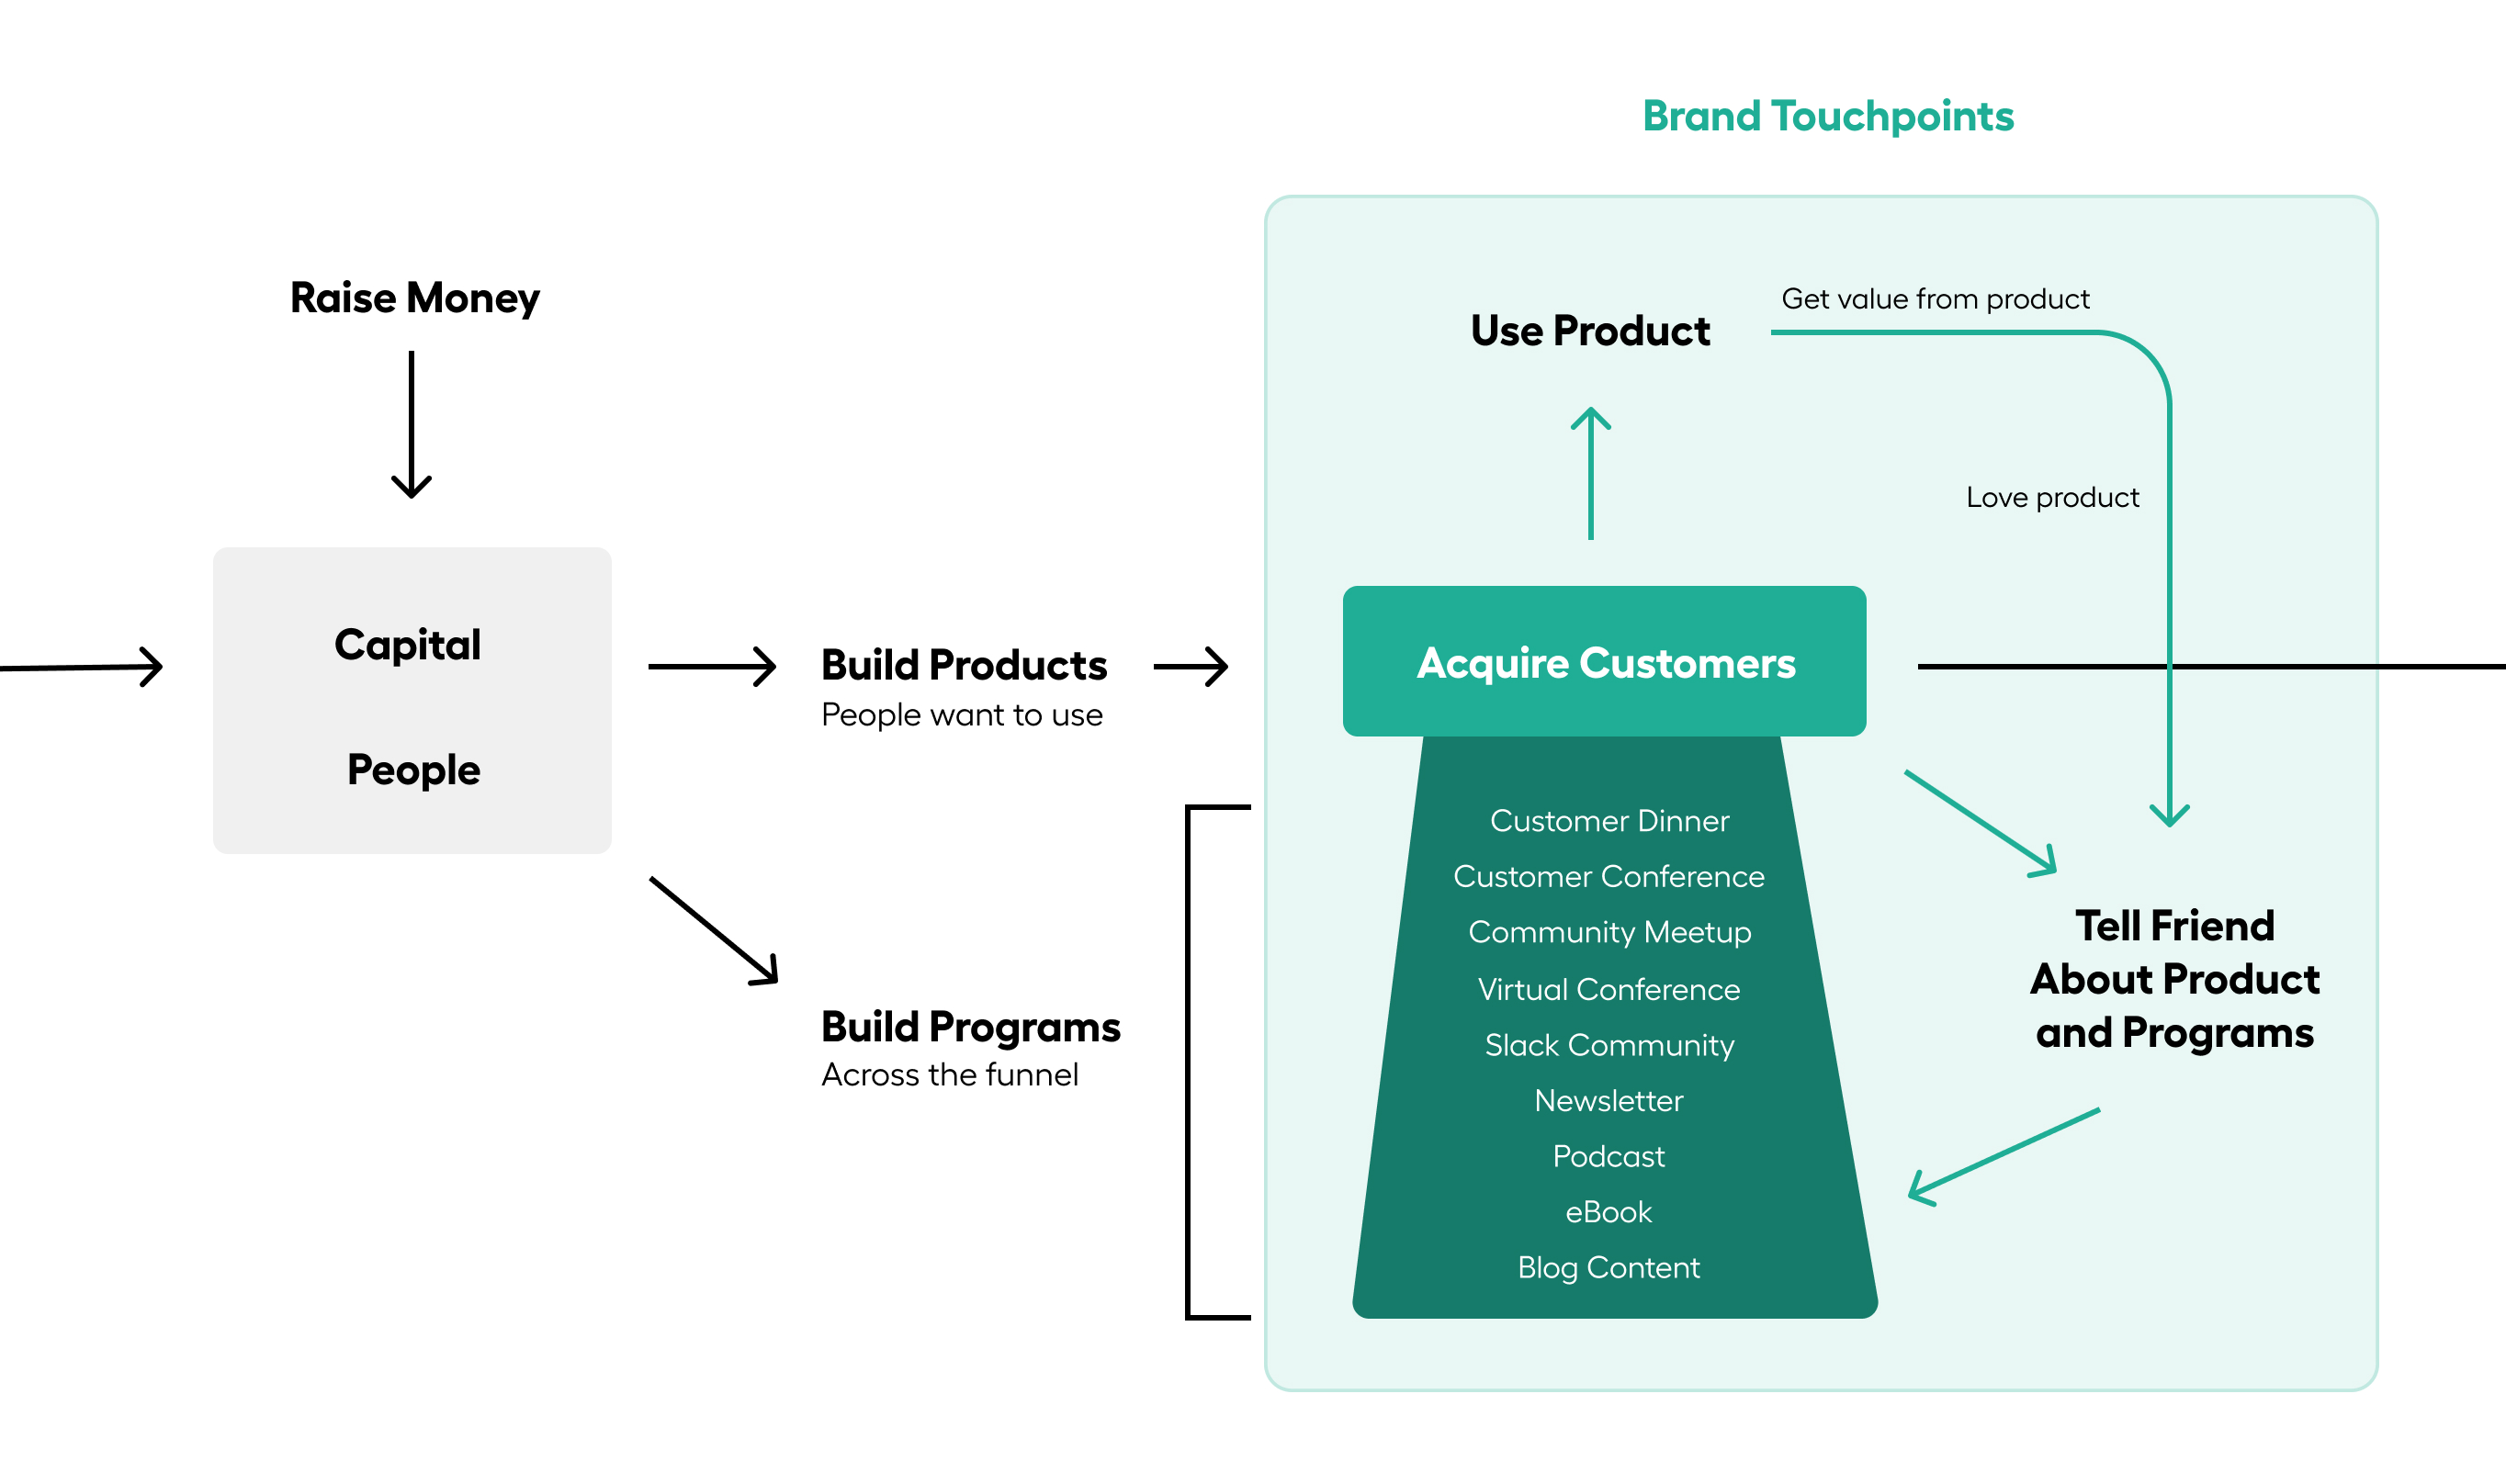 B2B Saas Brand Touchpoint Engine